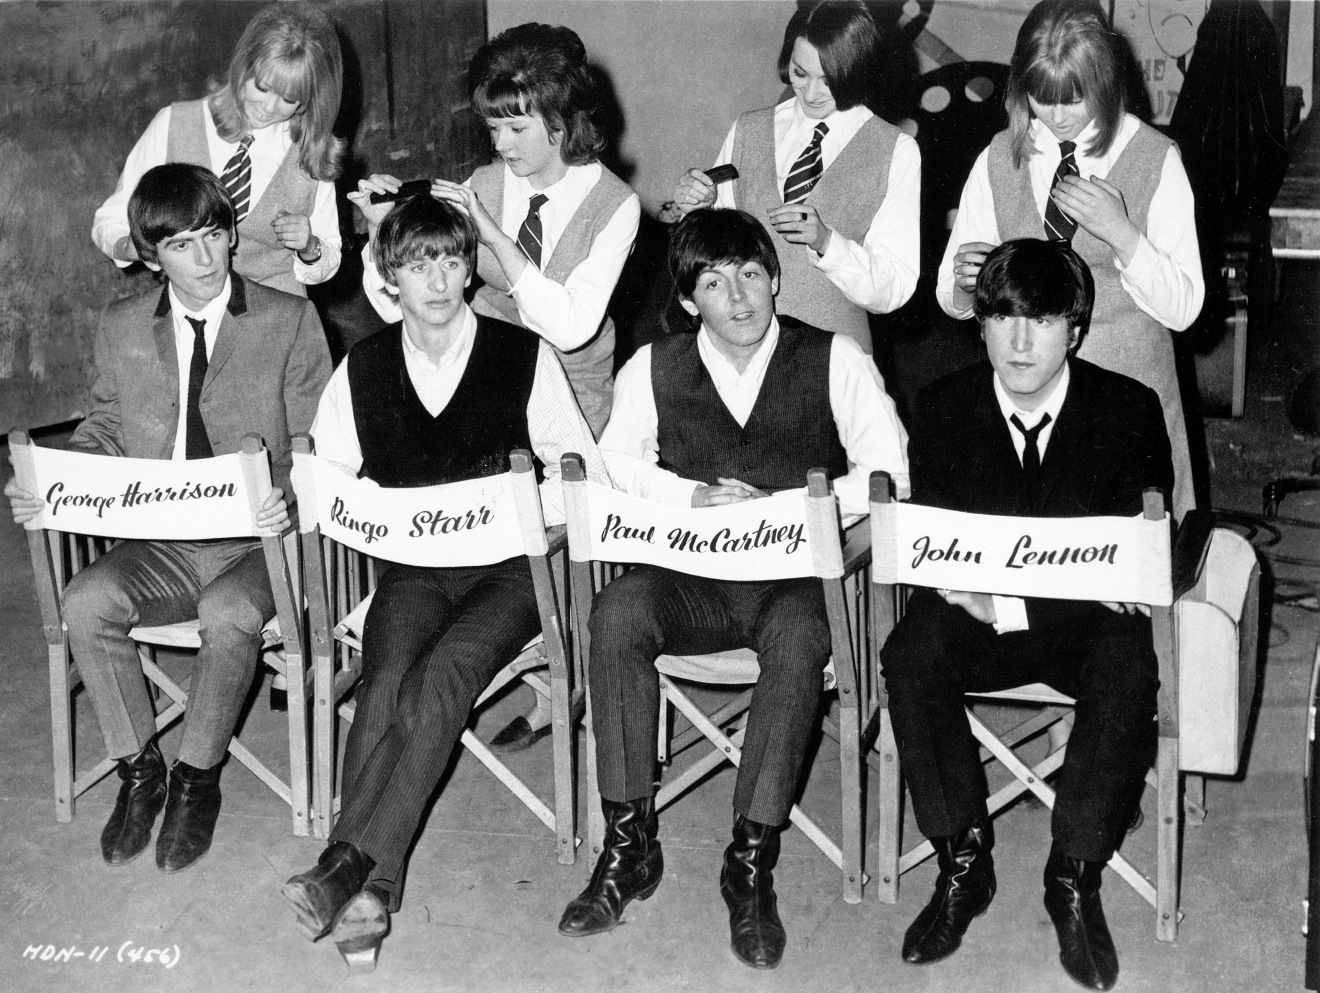 George Harrison, Ringo Starr, Paul McCartney, John Lennon on set A Hard Day's Night (1964) Directed by Richard Lester  When: 01 Jan 1964 Credit: WENN.com  **WENN does not claim any ownership including but not limited to Copyright or License in the attached material. Fees charged by WENN are for WENN's services only, and do not, nor are they intended to, convey to the user any ownership of Copyright or License in the material. By publishing this material you expressly agree to indemnify and to hold WENN and its directors, shareholders and employees harmless from any loss, claims, damages, demands, expenses (including legal fees), or any causes of action or allegation against WENN arising out of or connected in any way with publication of the material.**